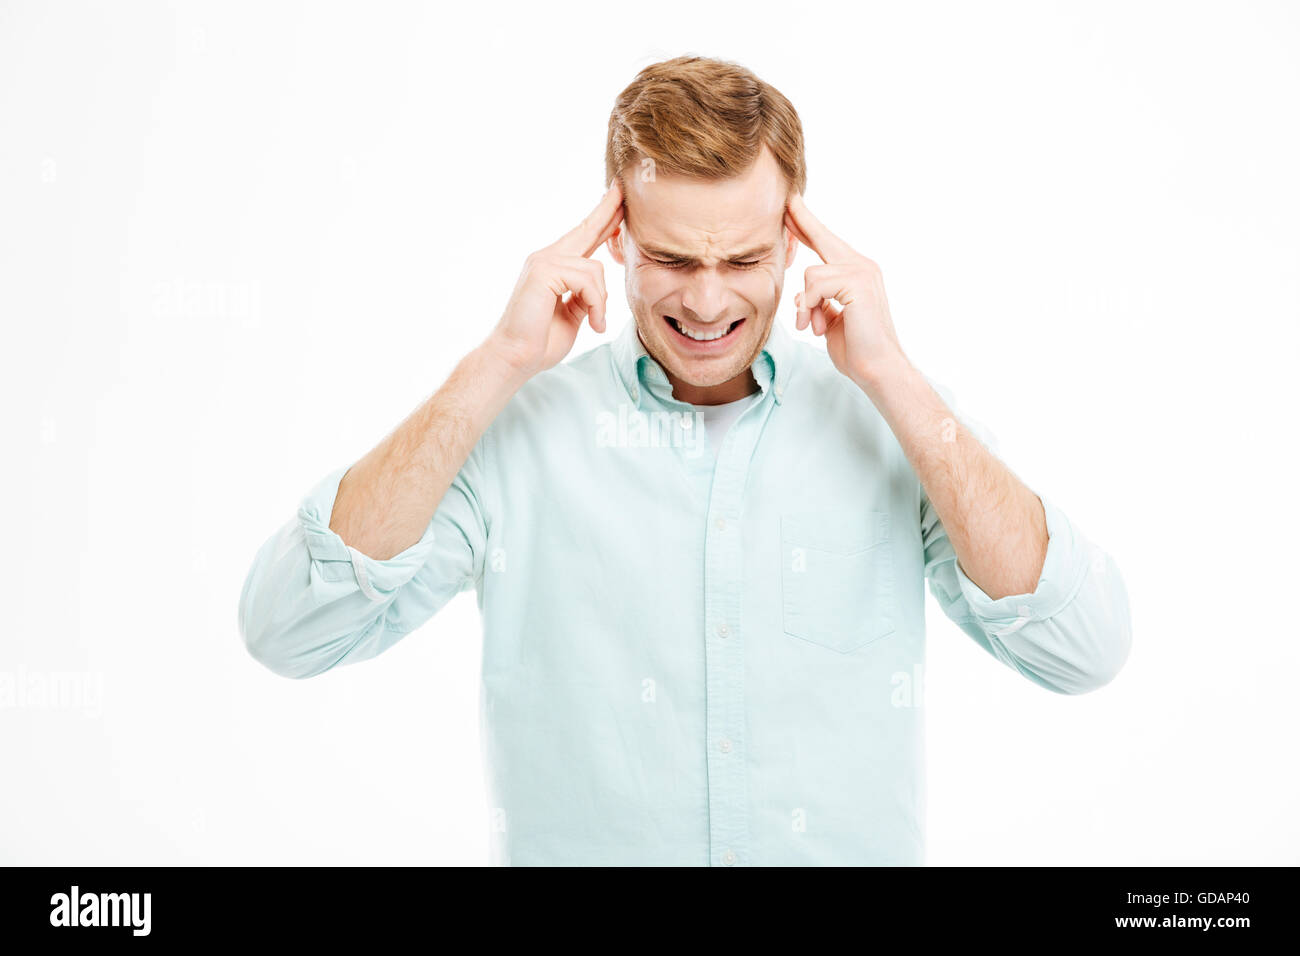 Stressful depressed blond man touching his temples and having headache over white background - Stock Image